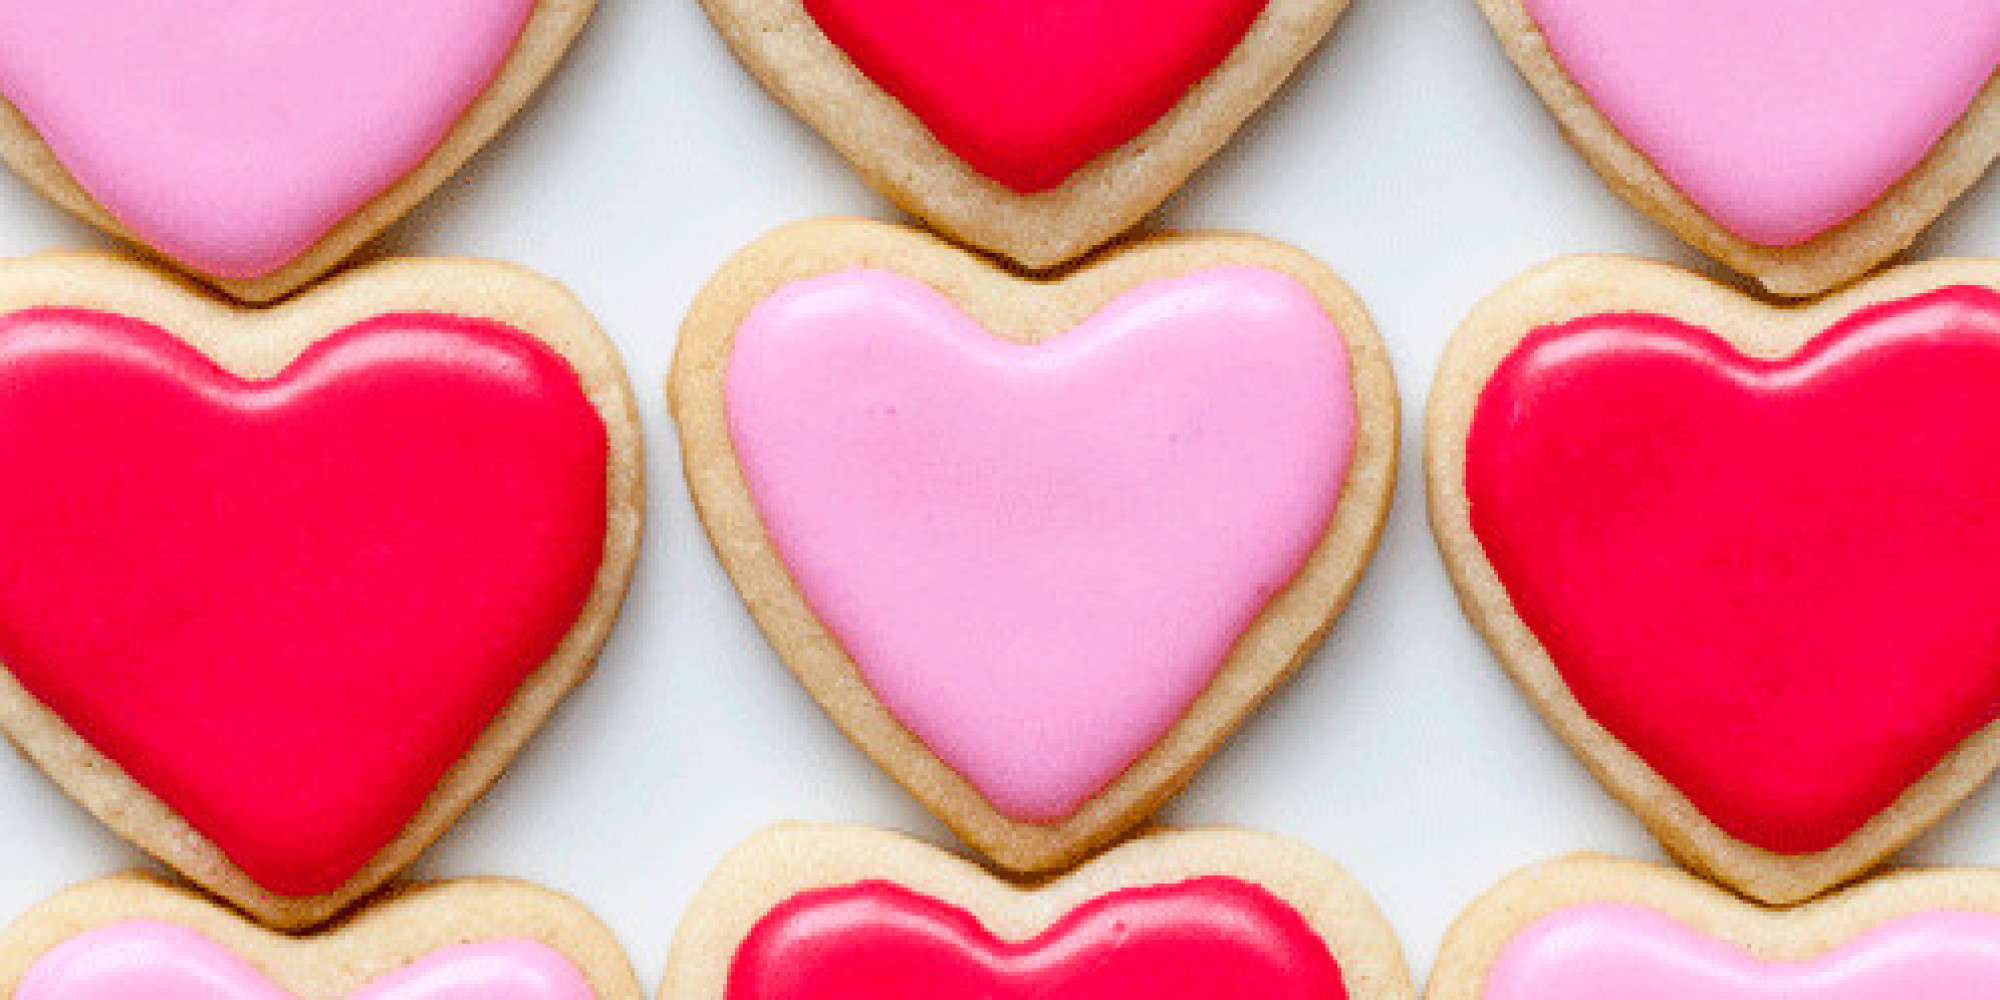 heart shaped dessert recipes for valentines day photos huffpost - Valentines Day Sweets